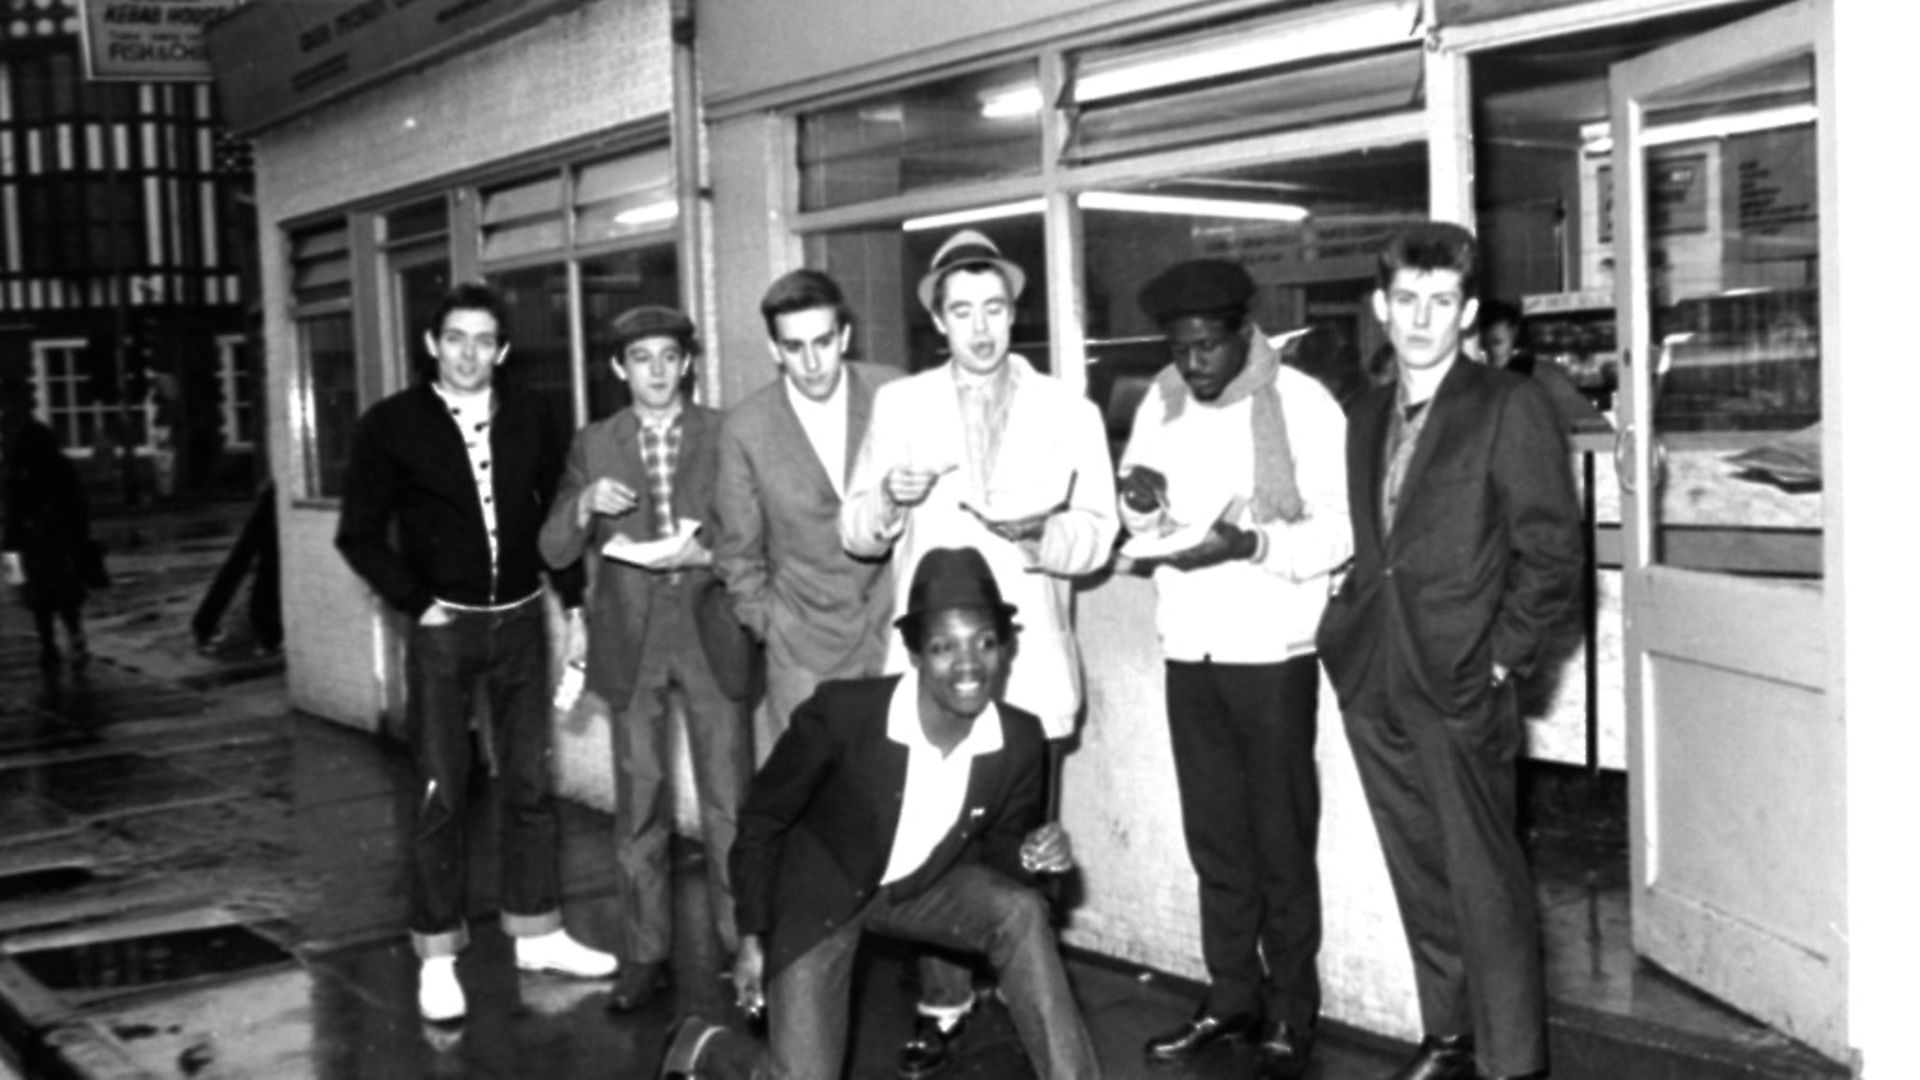 The Specials pop group in chip shop called 'The Parson's Nose' in Bishop Street, Coventry. Photo: John Potter/Mirrorpix/Getty Images - Credit: Getty Images